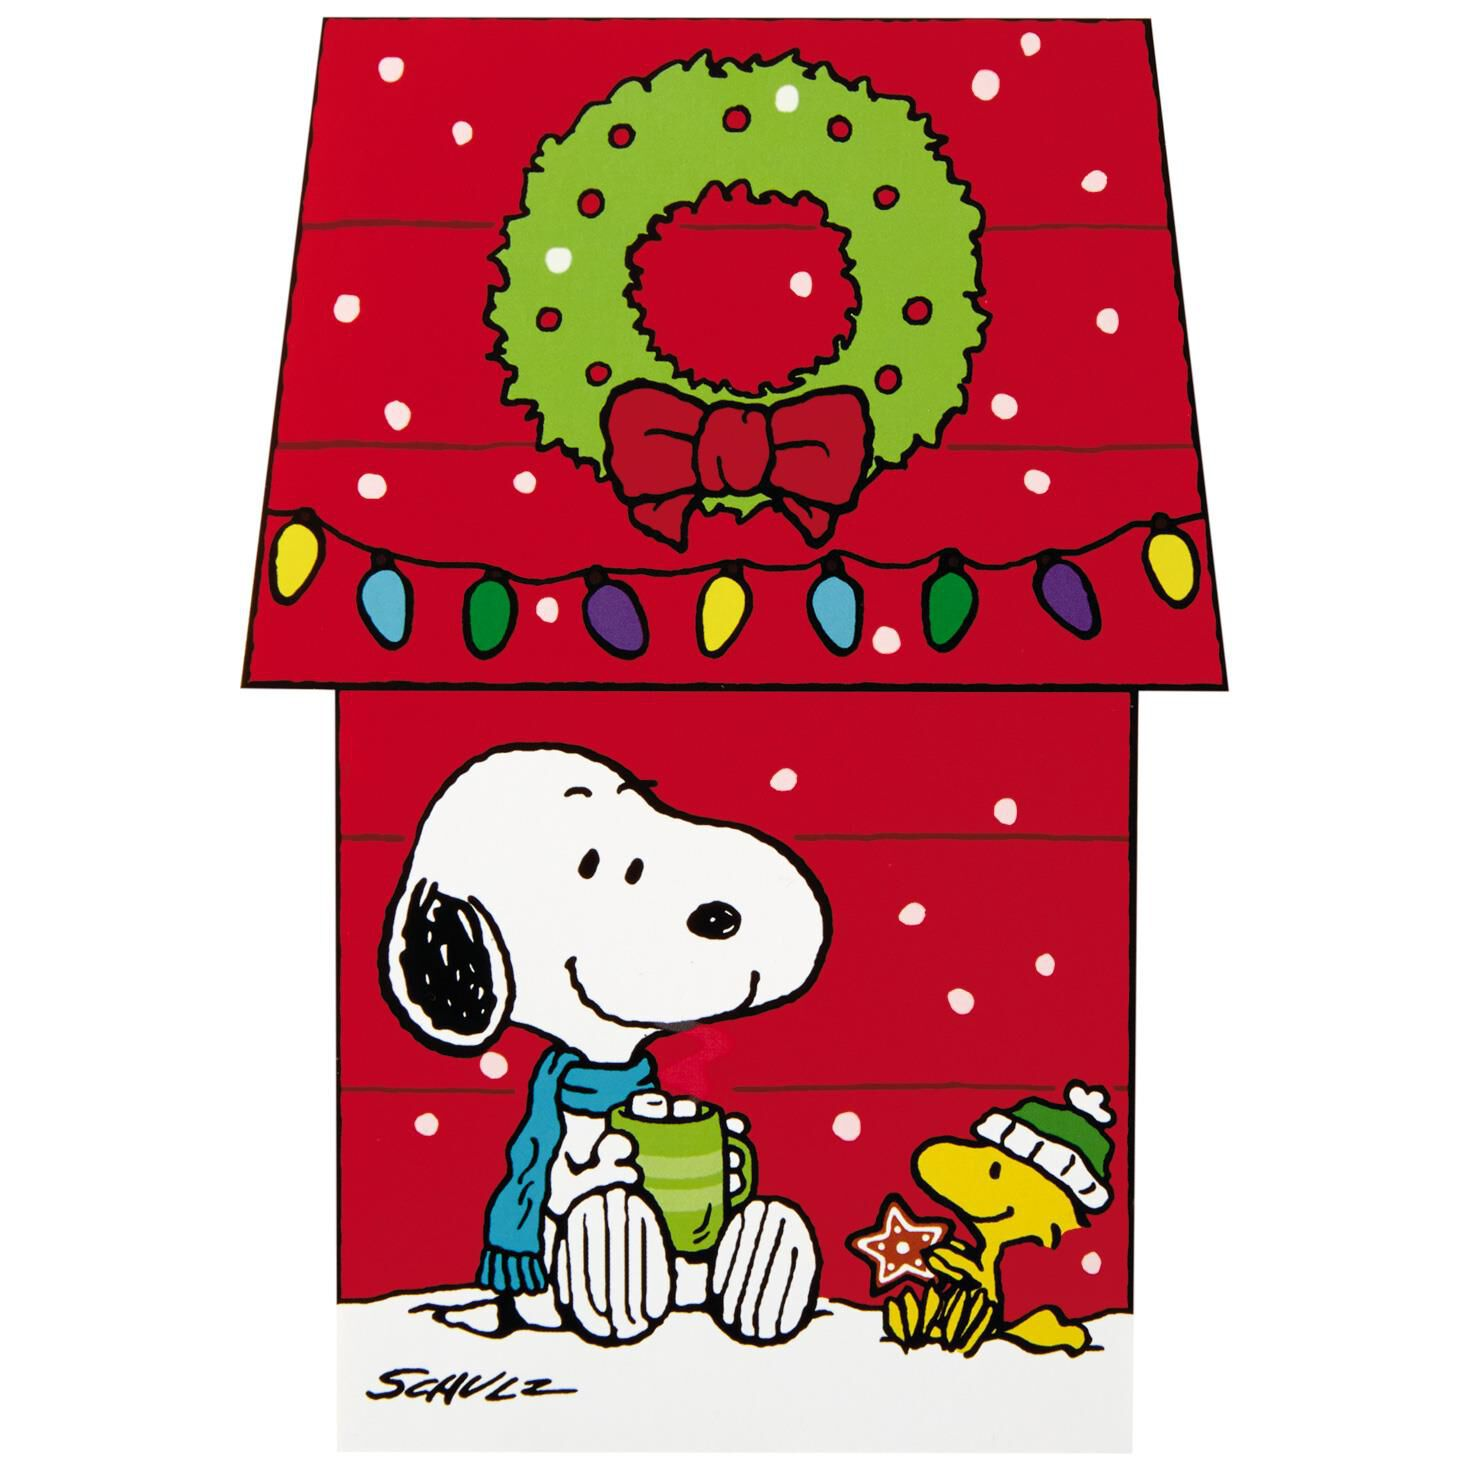 Christmas Card Clip Art.Peanuts Snoopy Dog House Christmas Cards With Decorated Storage Box Box Of 16